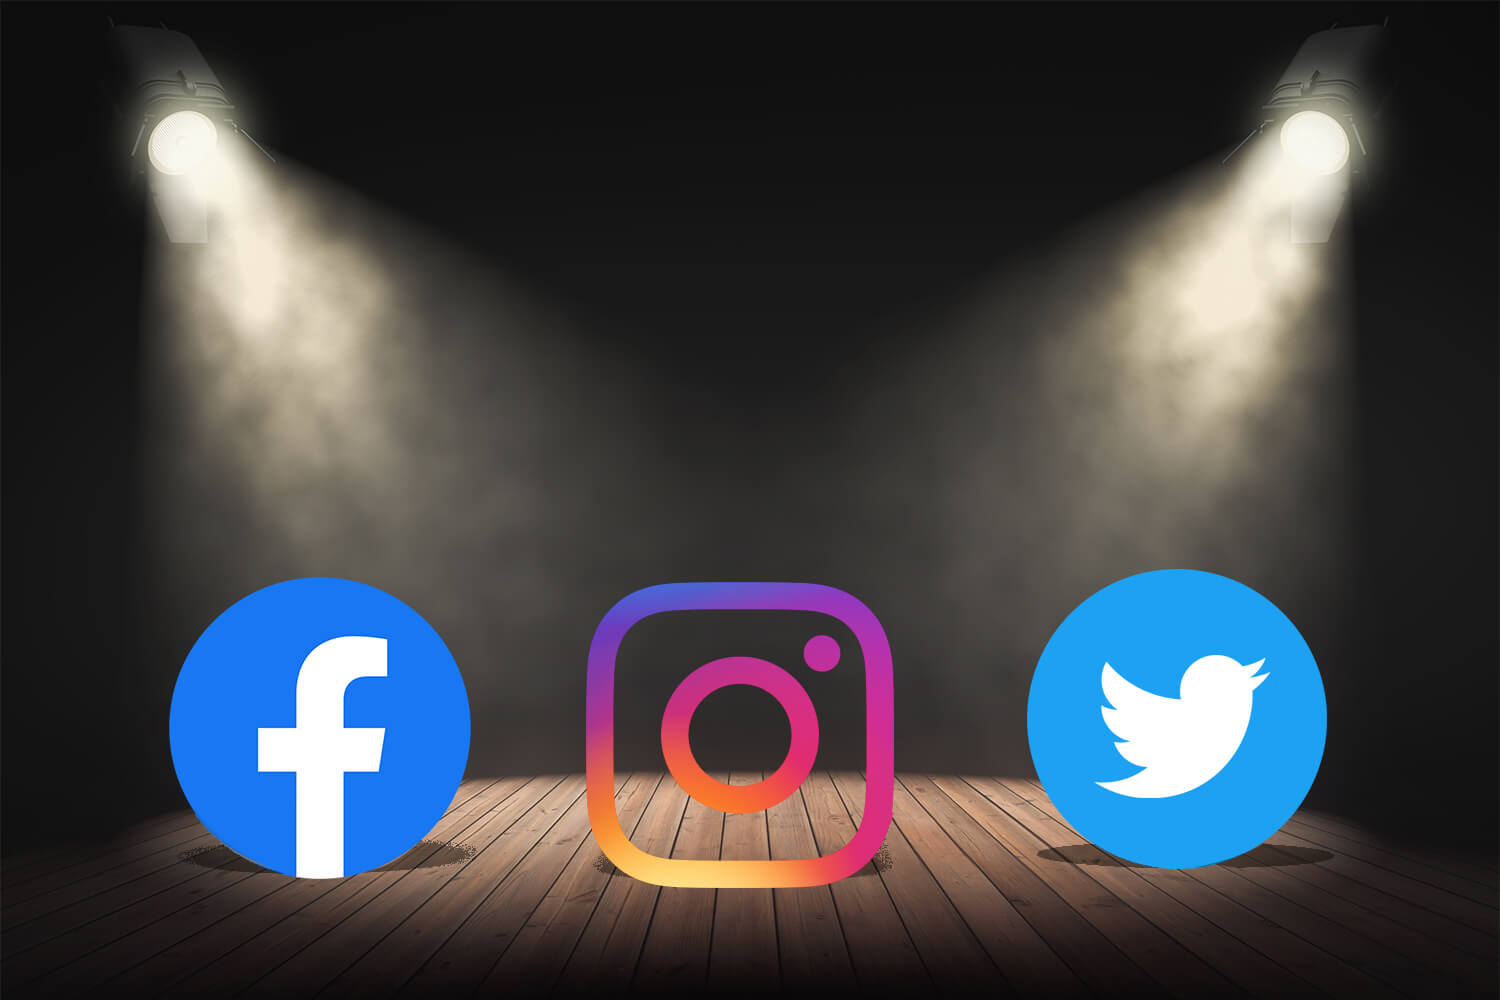 Social media icons on stage lit by two spotlights